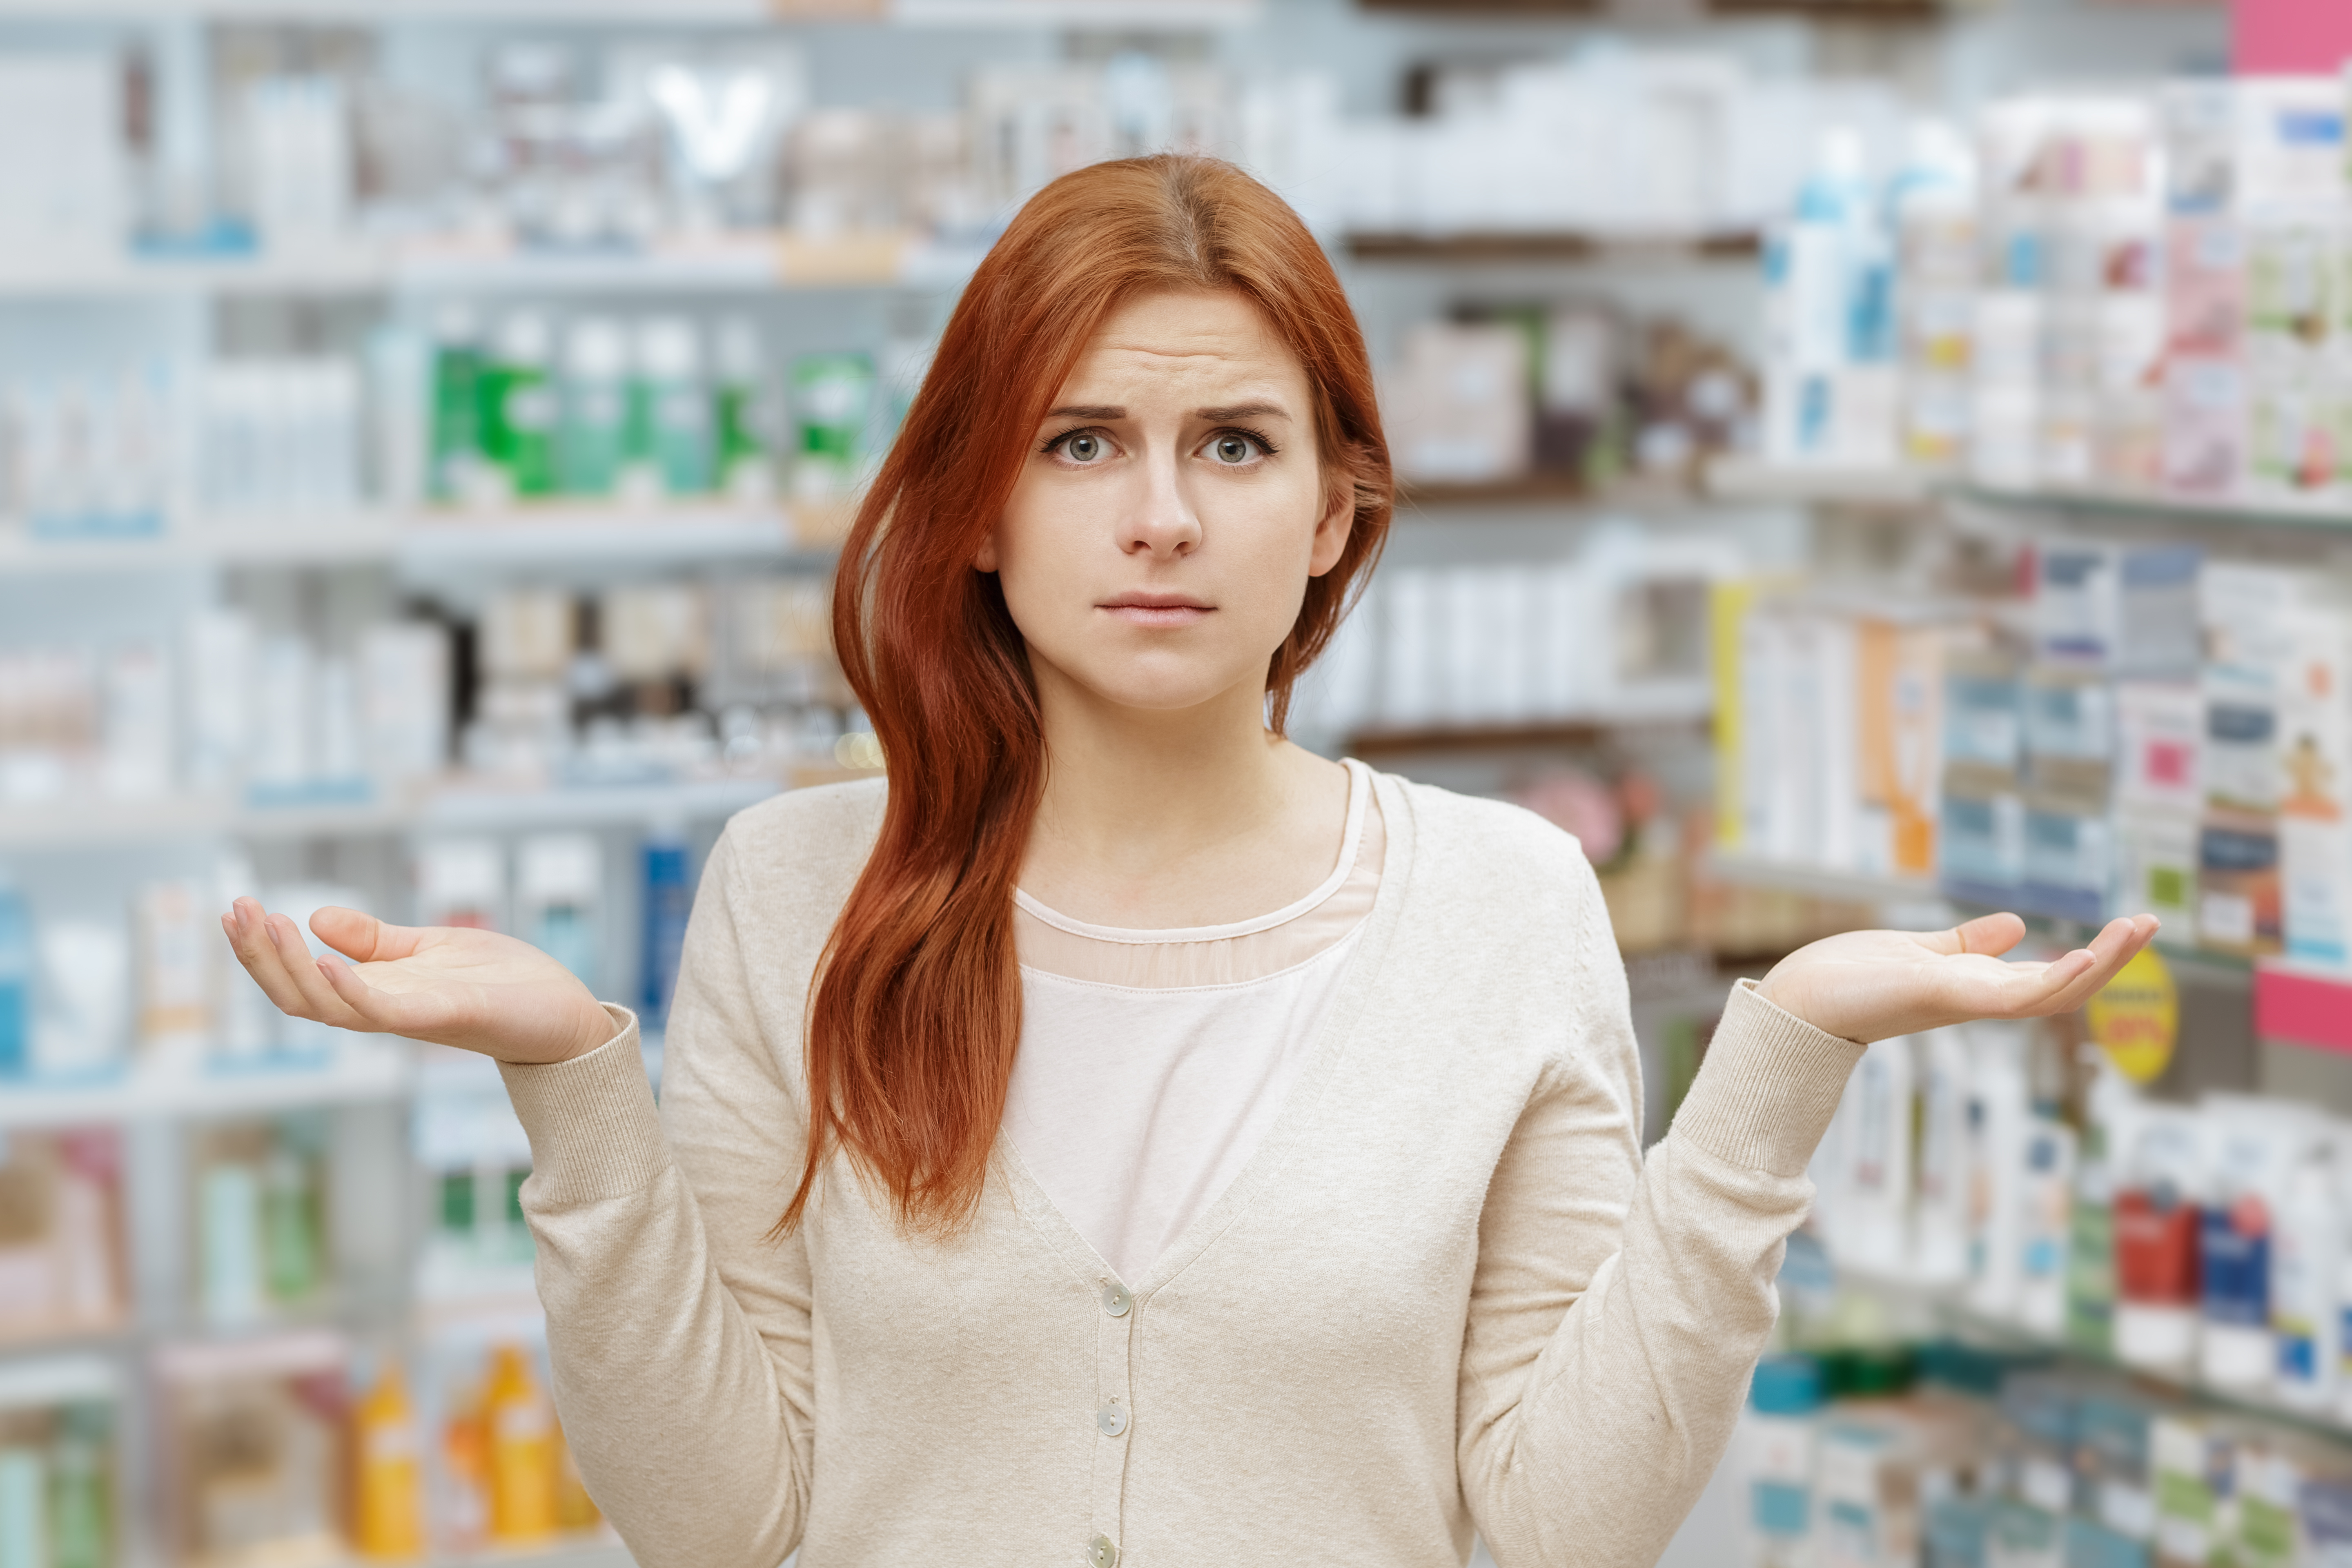 Confused healthcare shopper